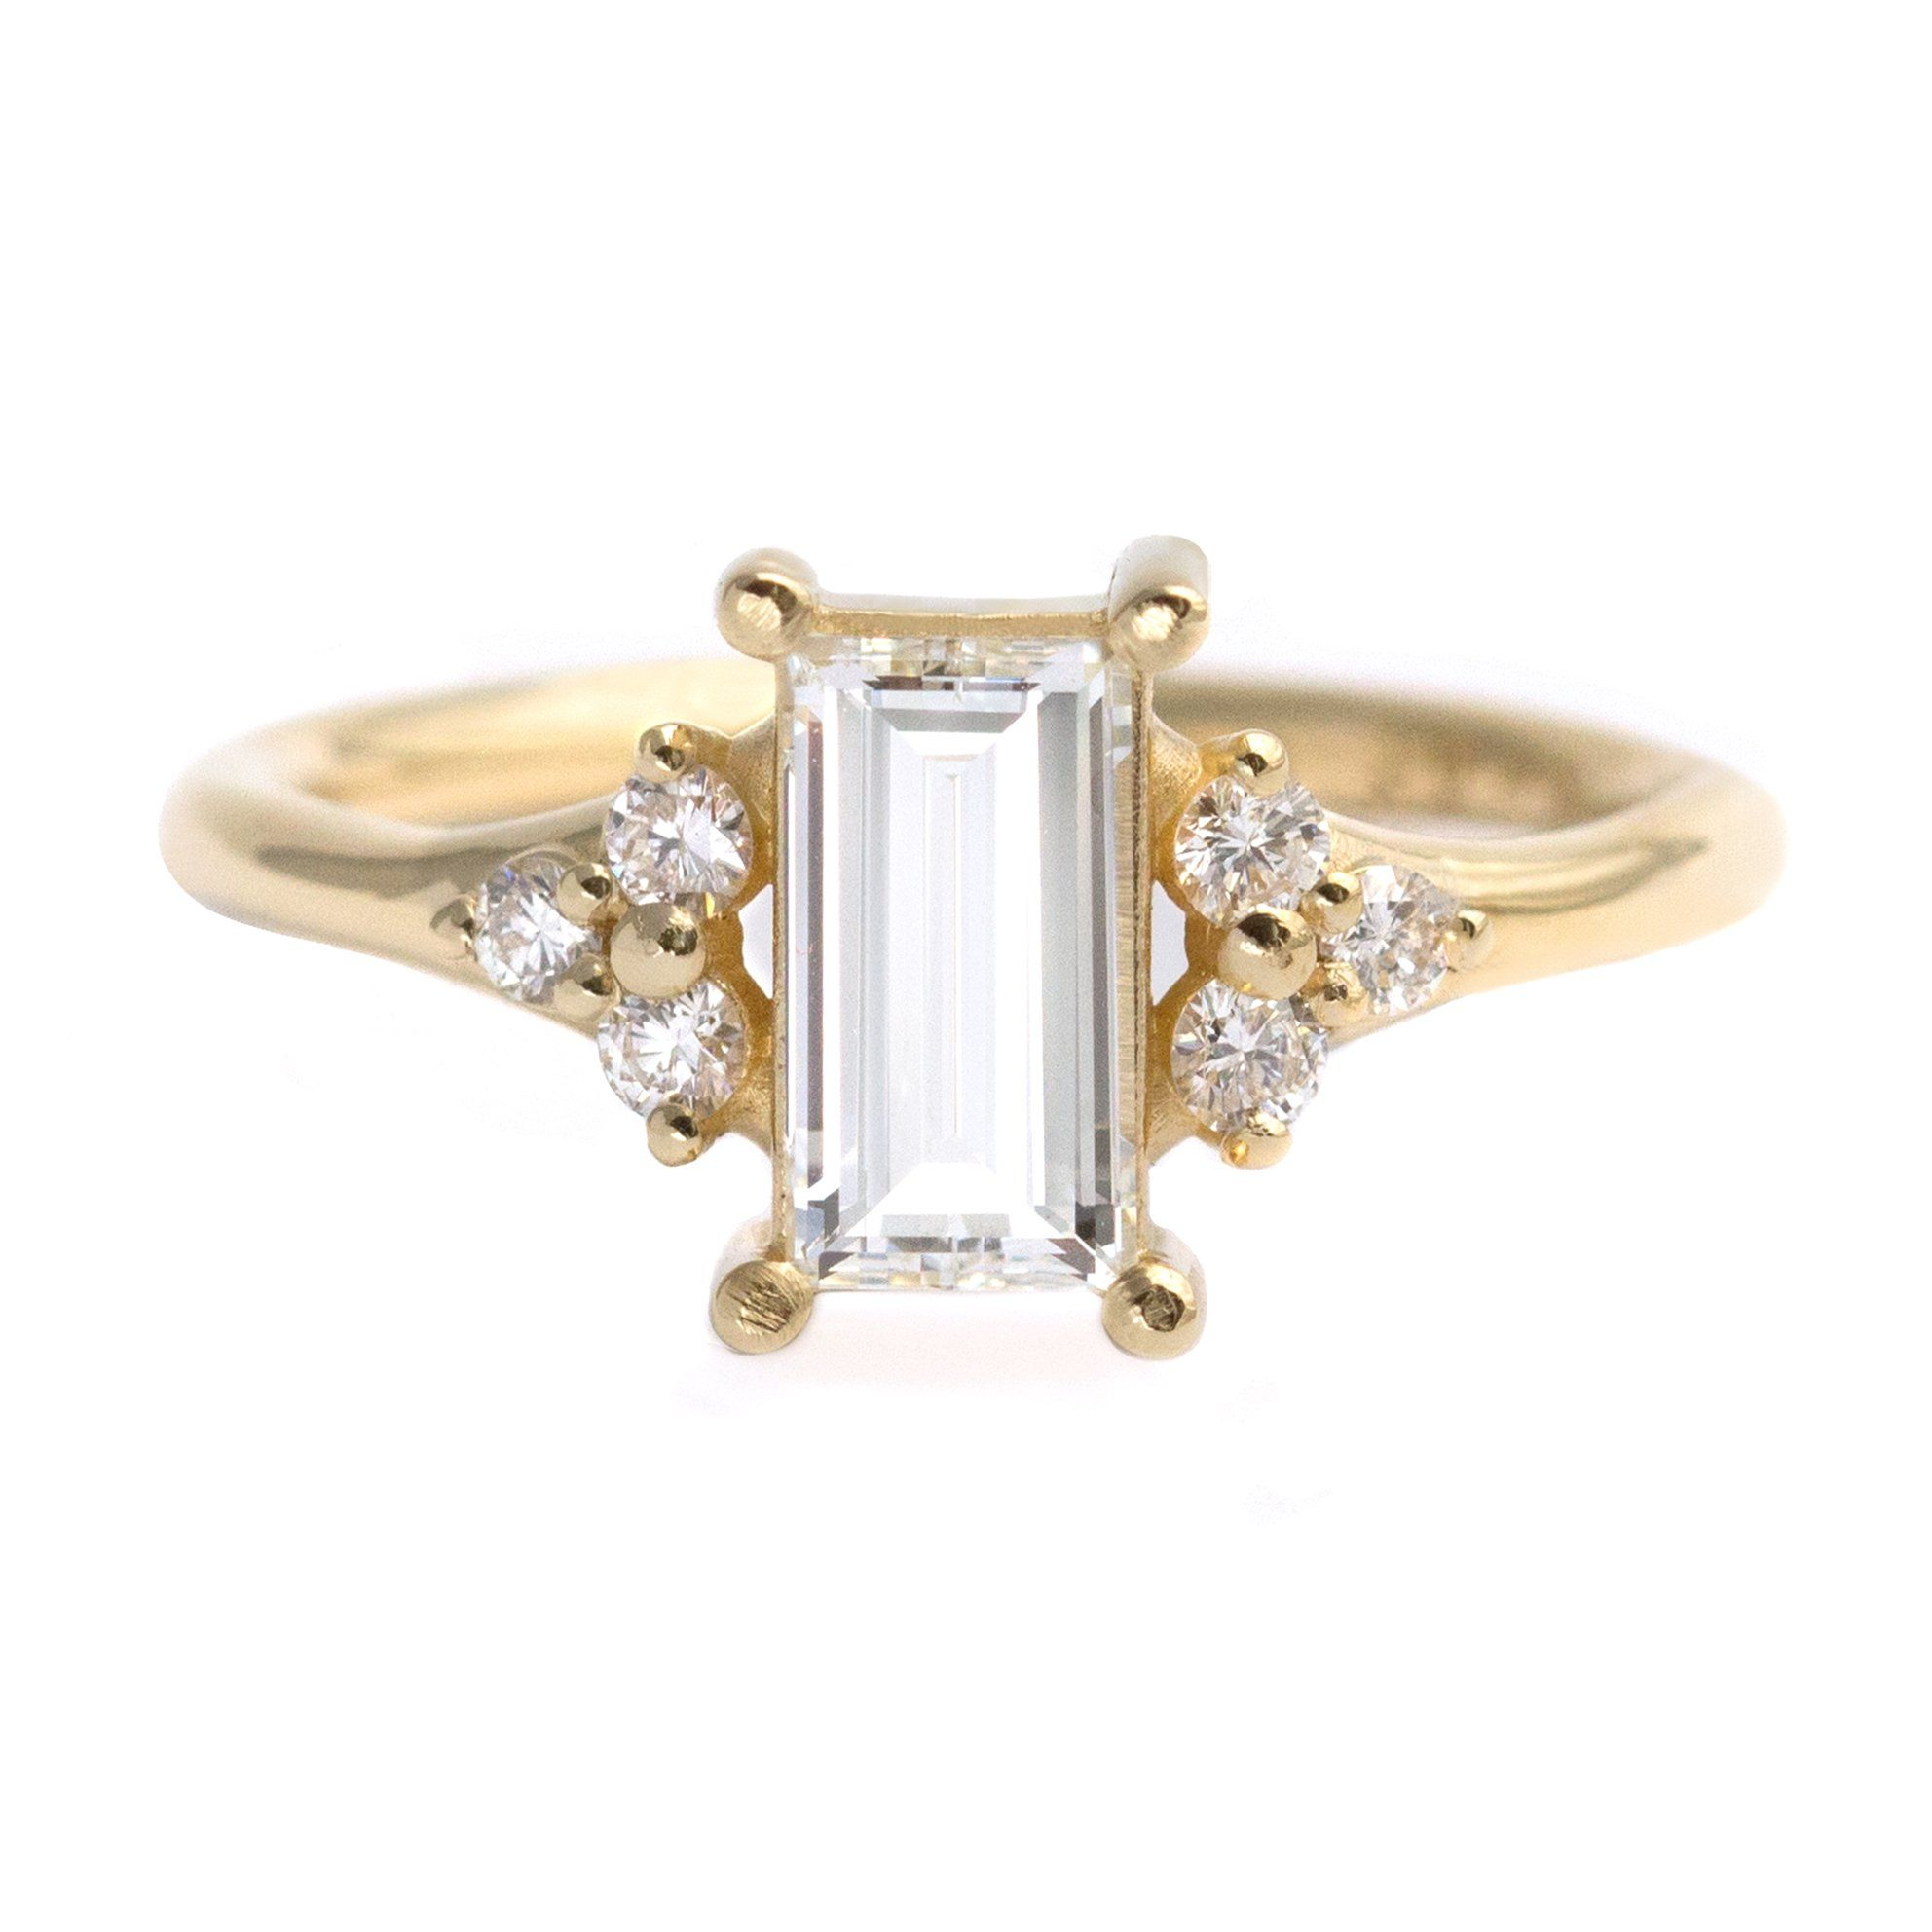 95cd5c0e8e5aab One Carat Baguette Diamond Engagement Ring in 2019 | Artemer Jewelry ...